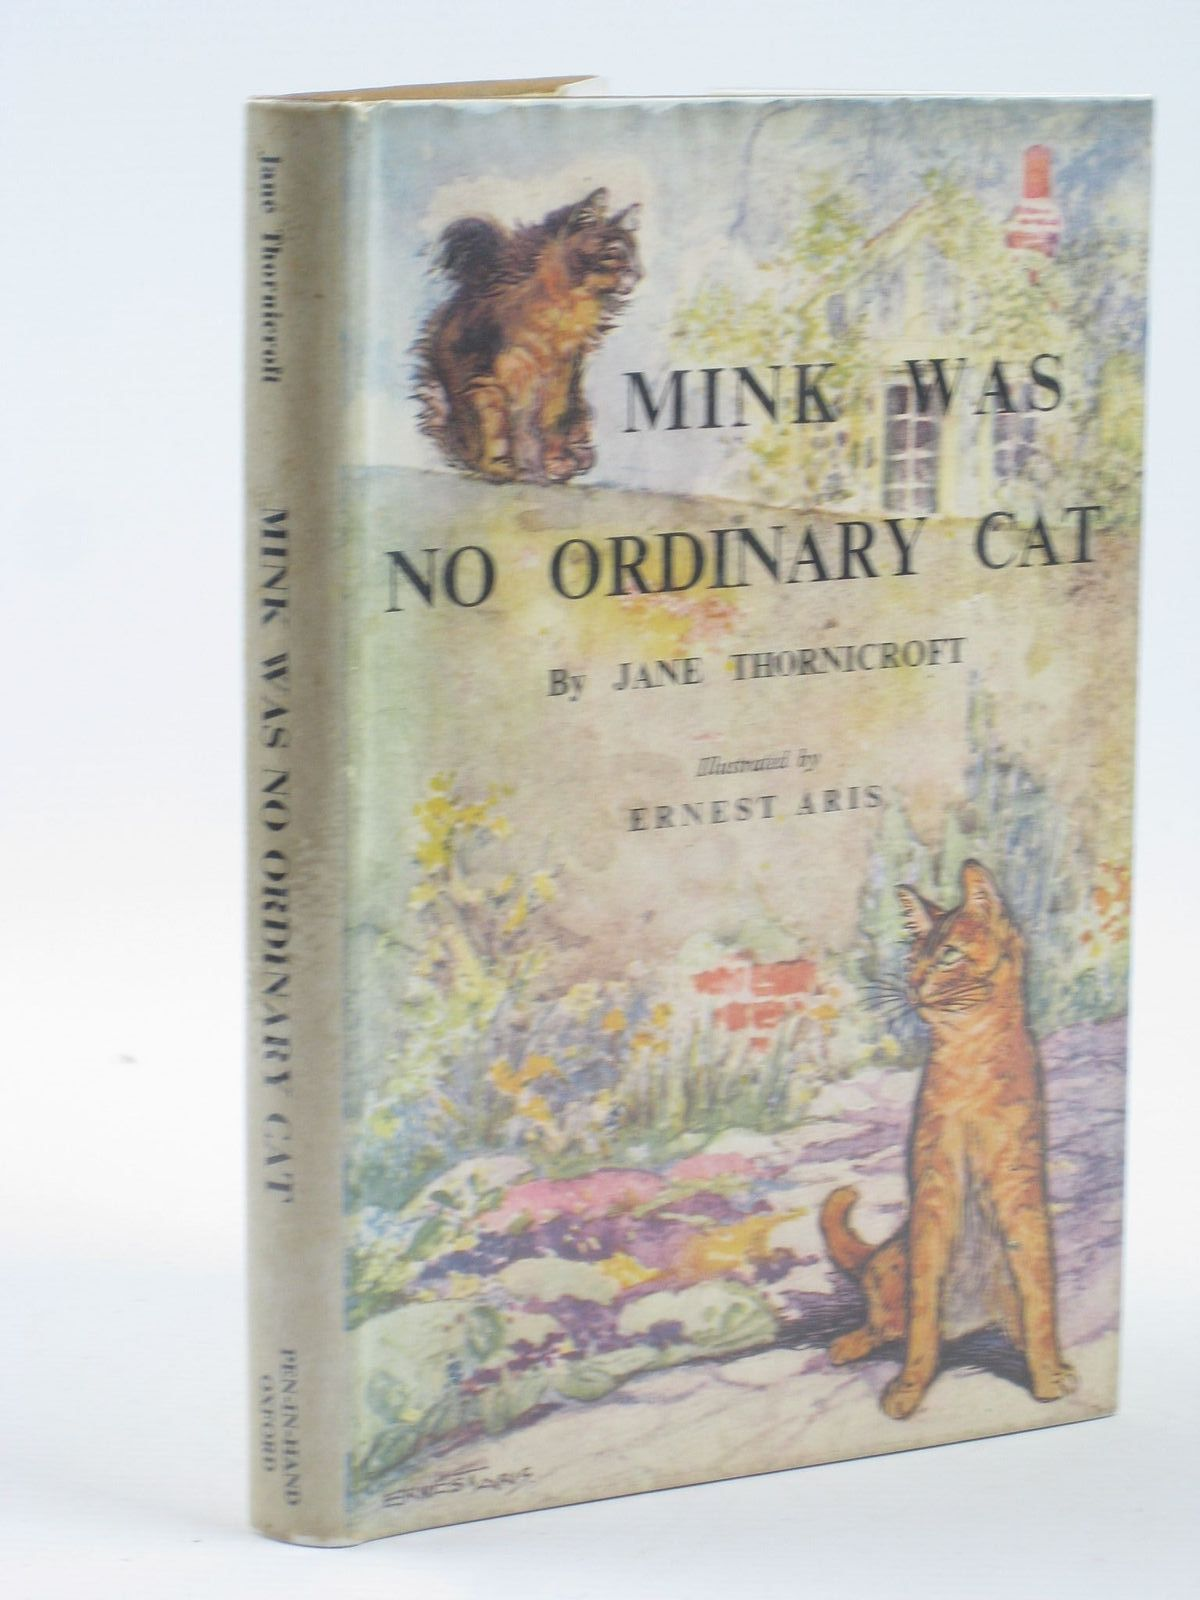 Photo of MINK WAS NO ORDINARY CAT written by Thornicroft, Jane illustrated by Aris, Ernest A. published by Pen-In-Hand Publishing Co. Ltd. (STOCK CODE: 1401985)  for sale by Stella & Rose's Books